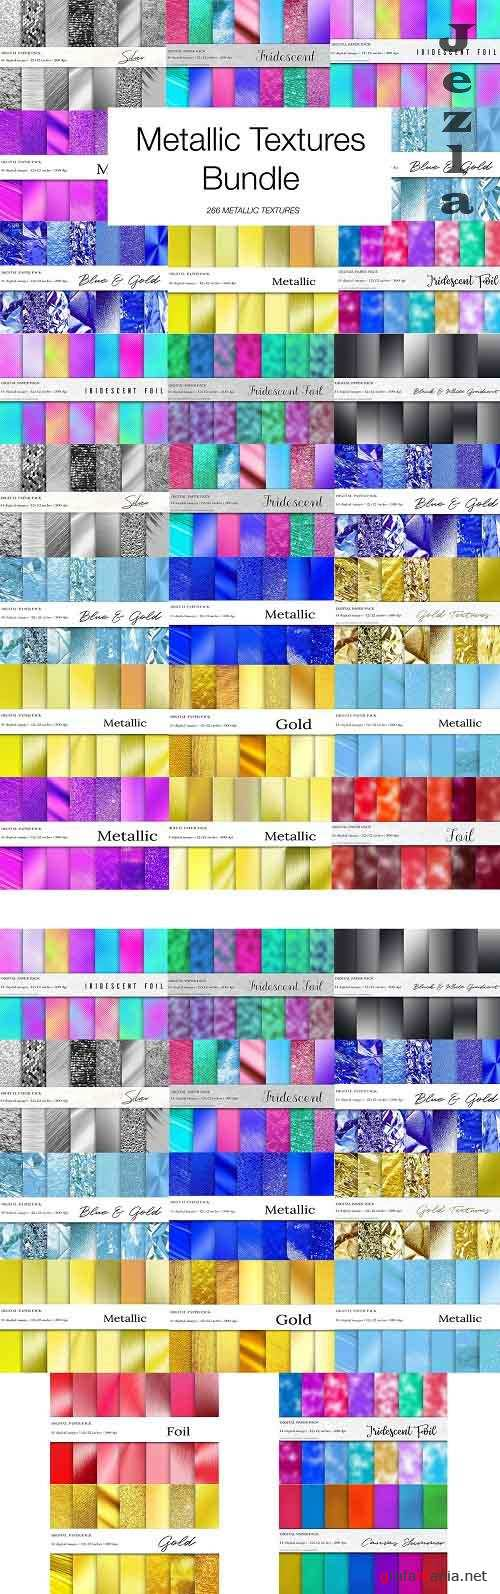 266 Metallic Textures Bundle - 4964246